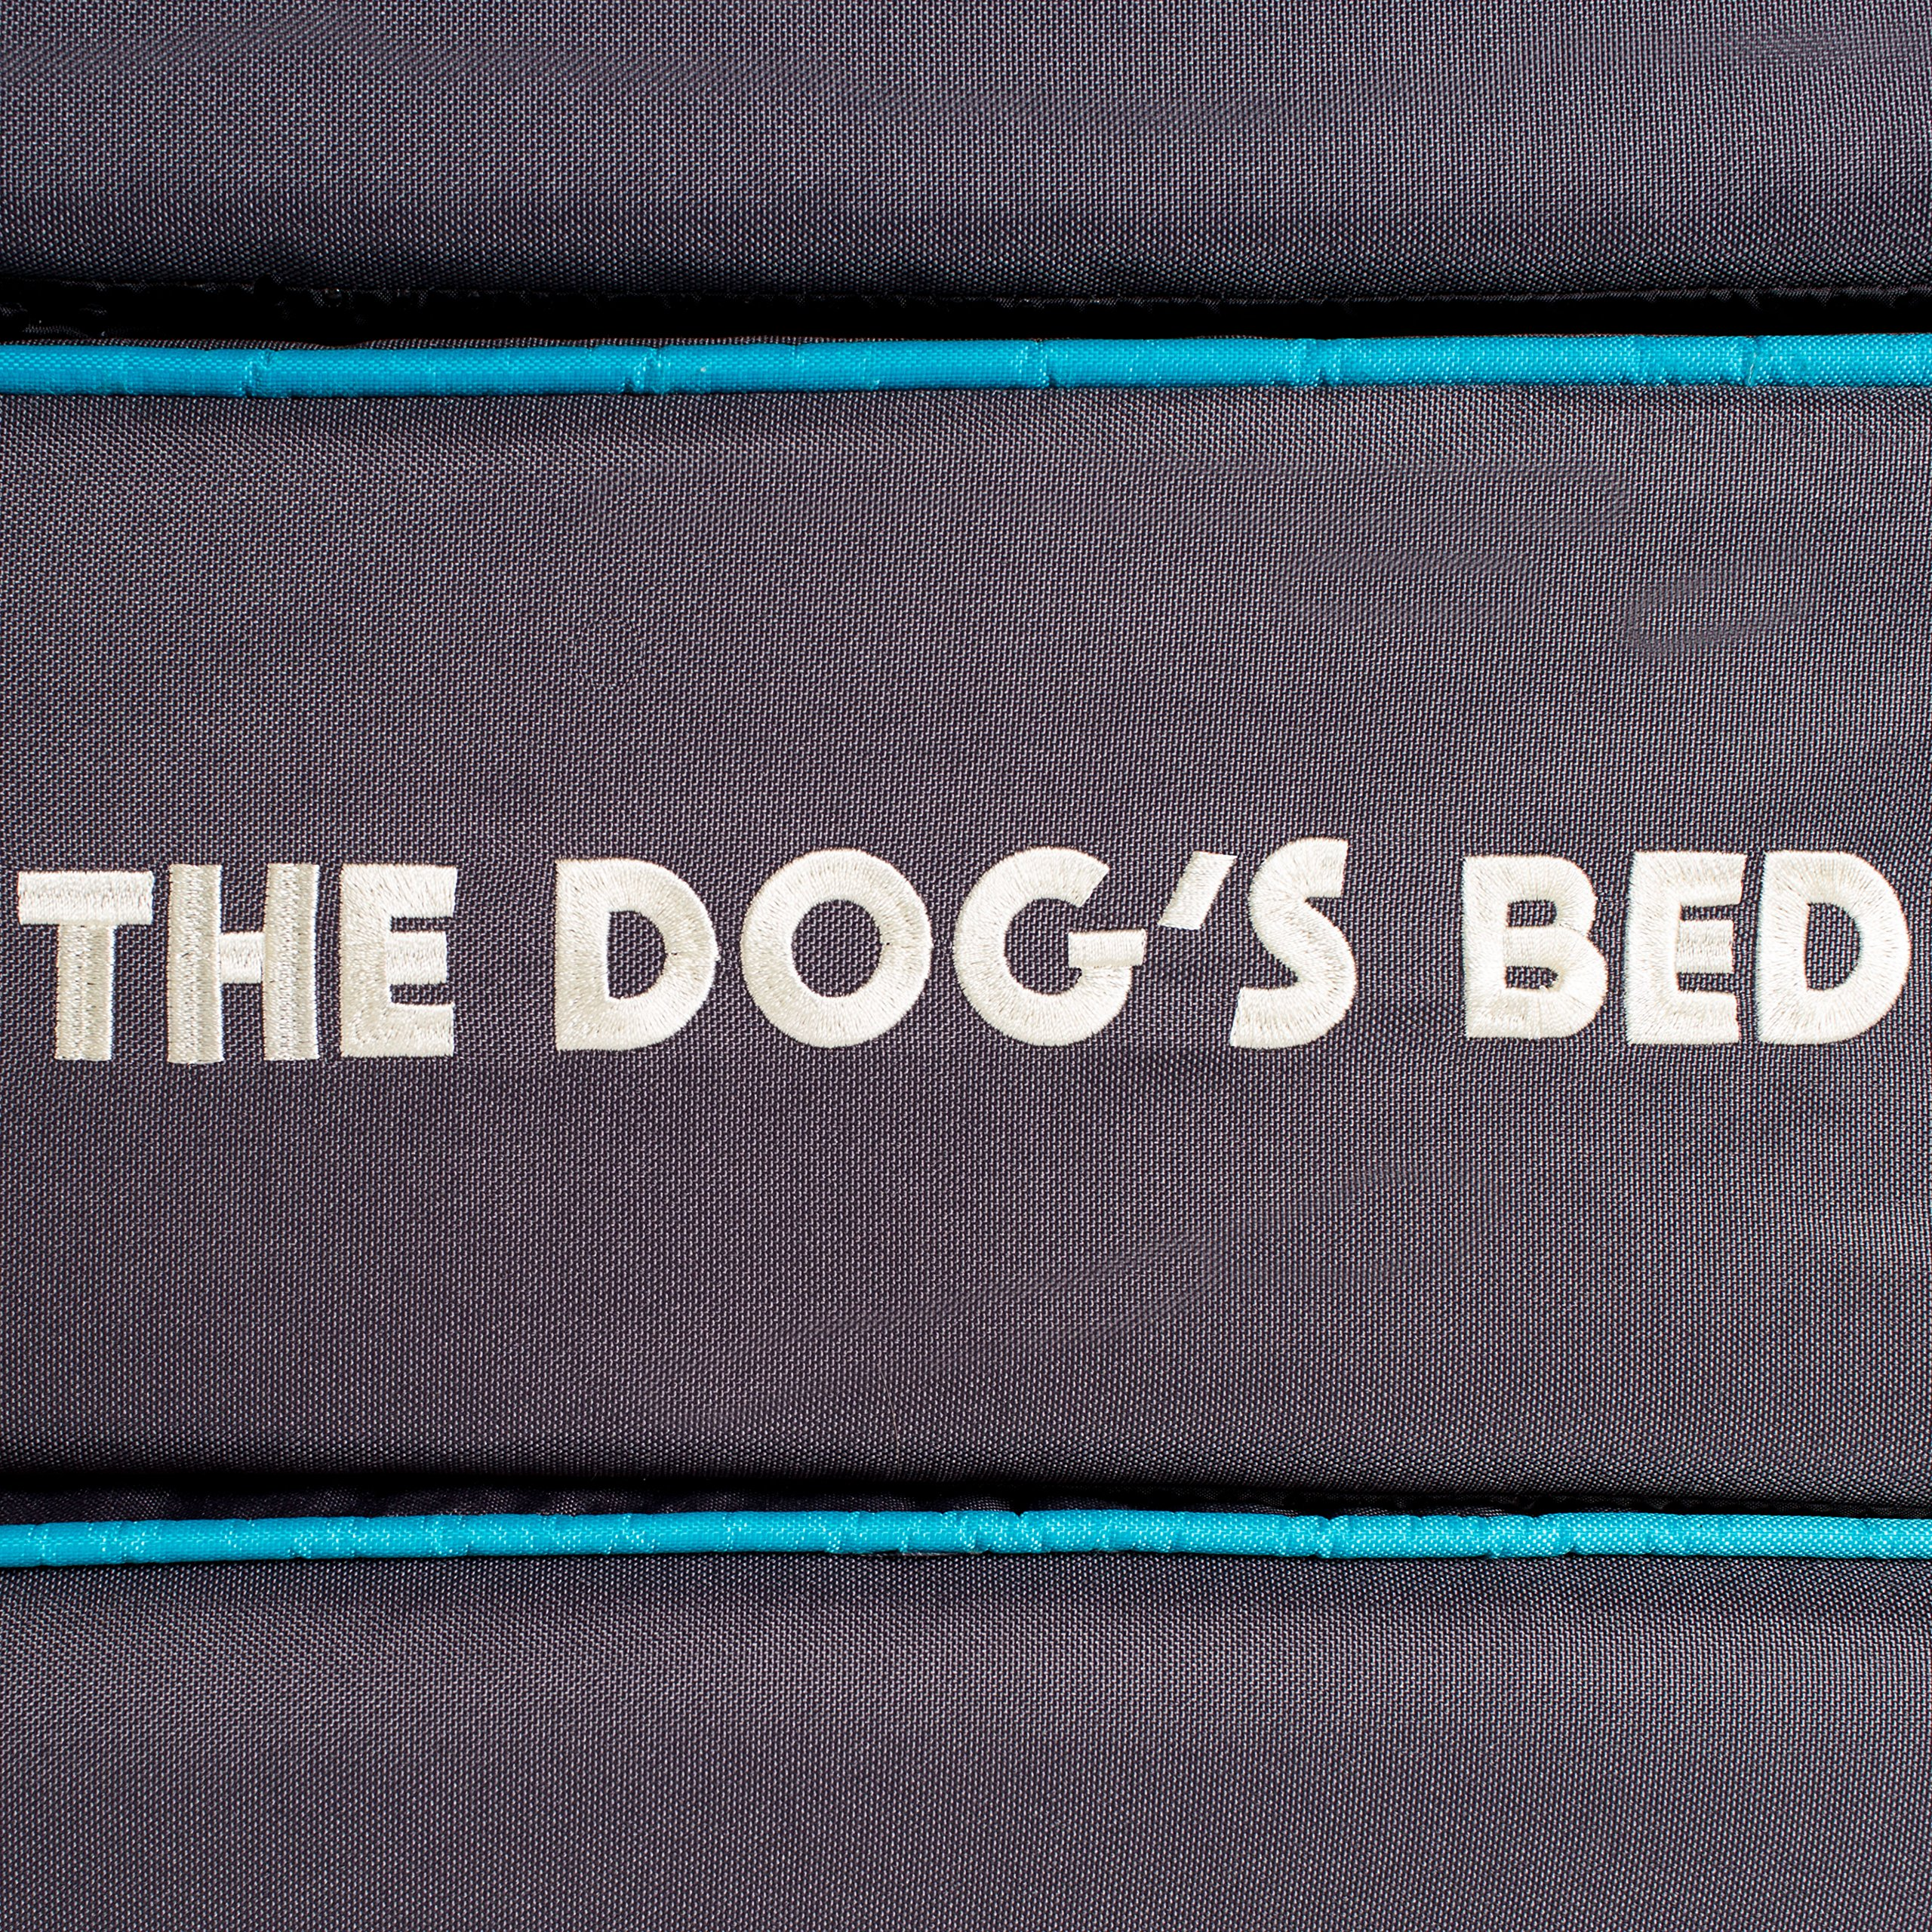 "Replacement Cover ONLY For The Dog's Bed, Washable Quality Oxford Fabric, XXL 54"" x 36"" x 6"" (Grey With Blue Piping) by The Dog's Balls (Image #4)"